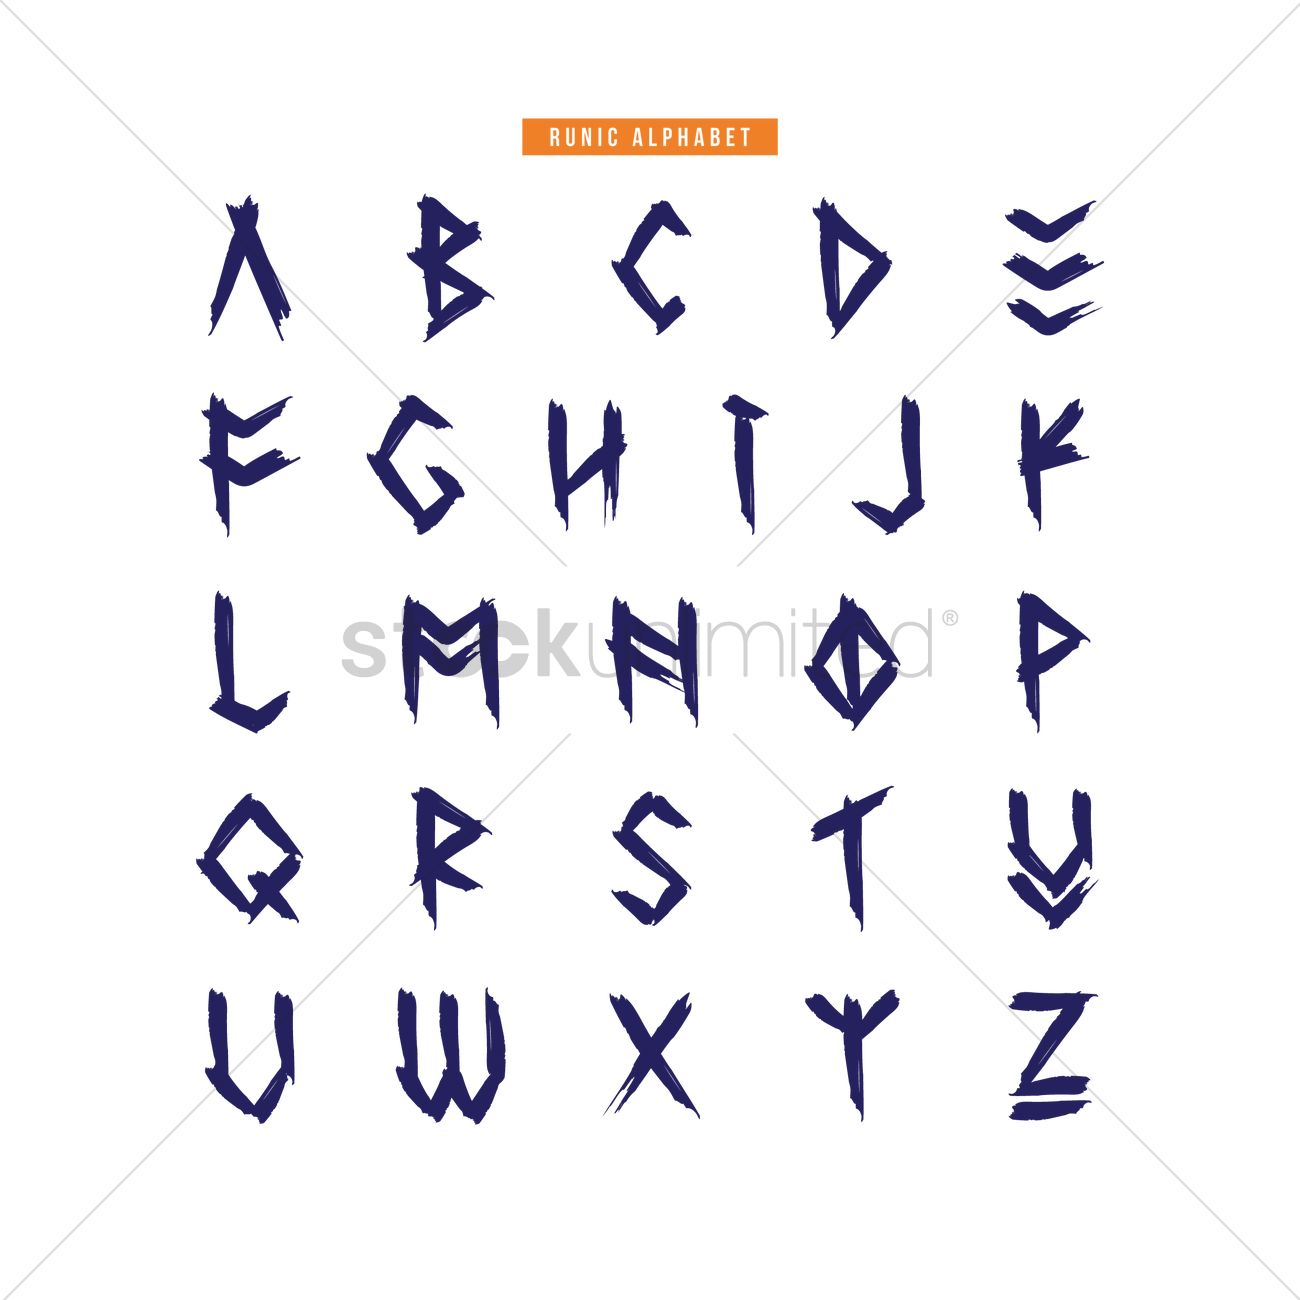 Runic Alphabet Design Vector Graphic